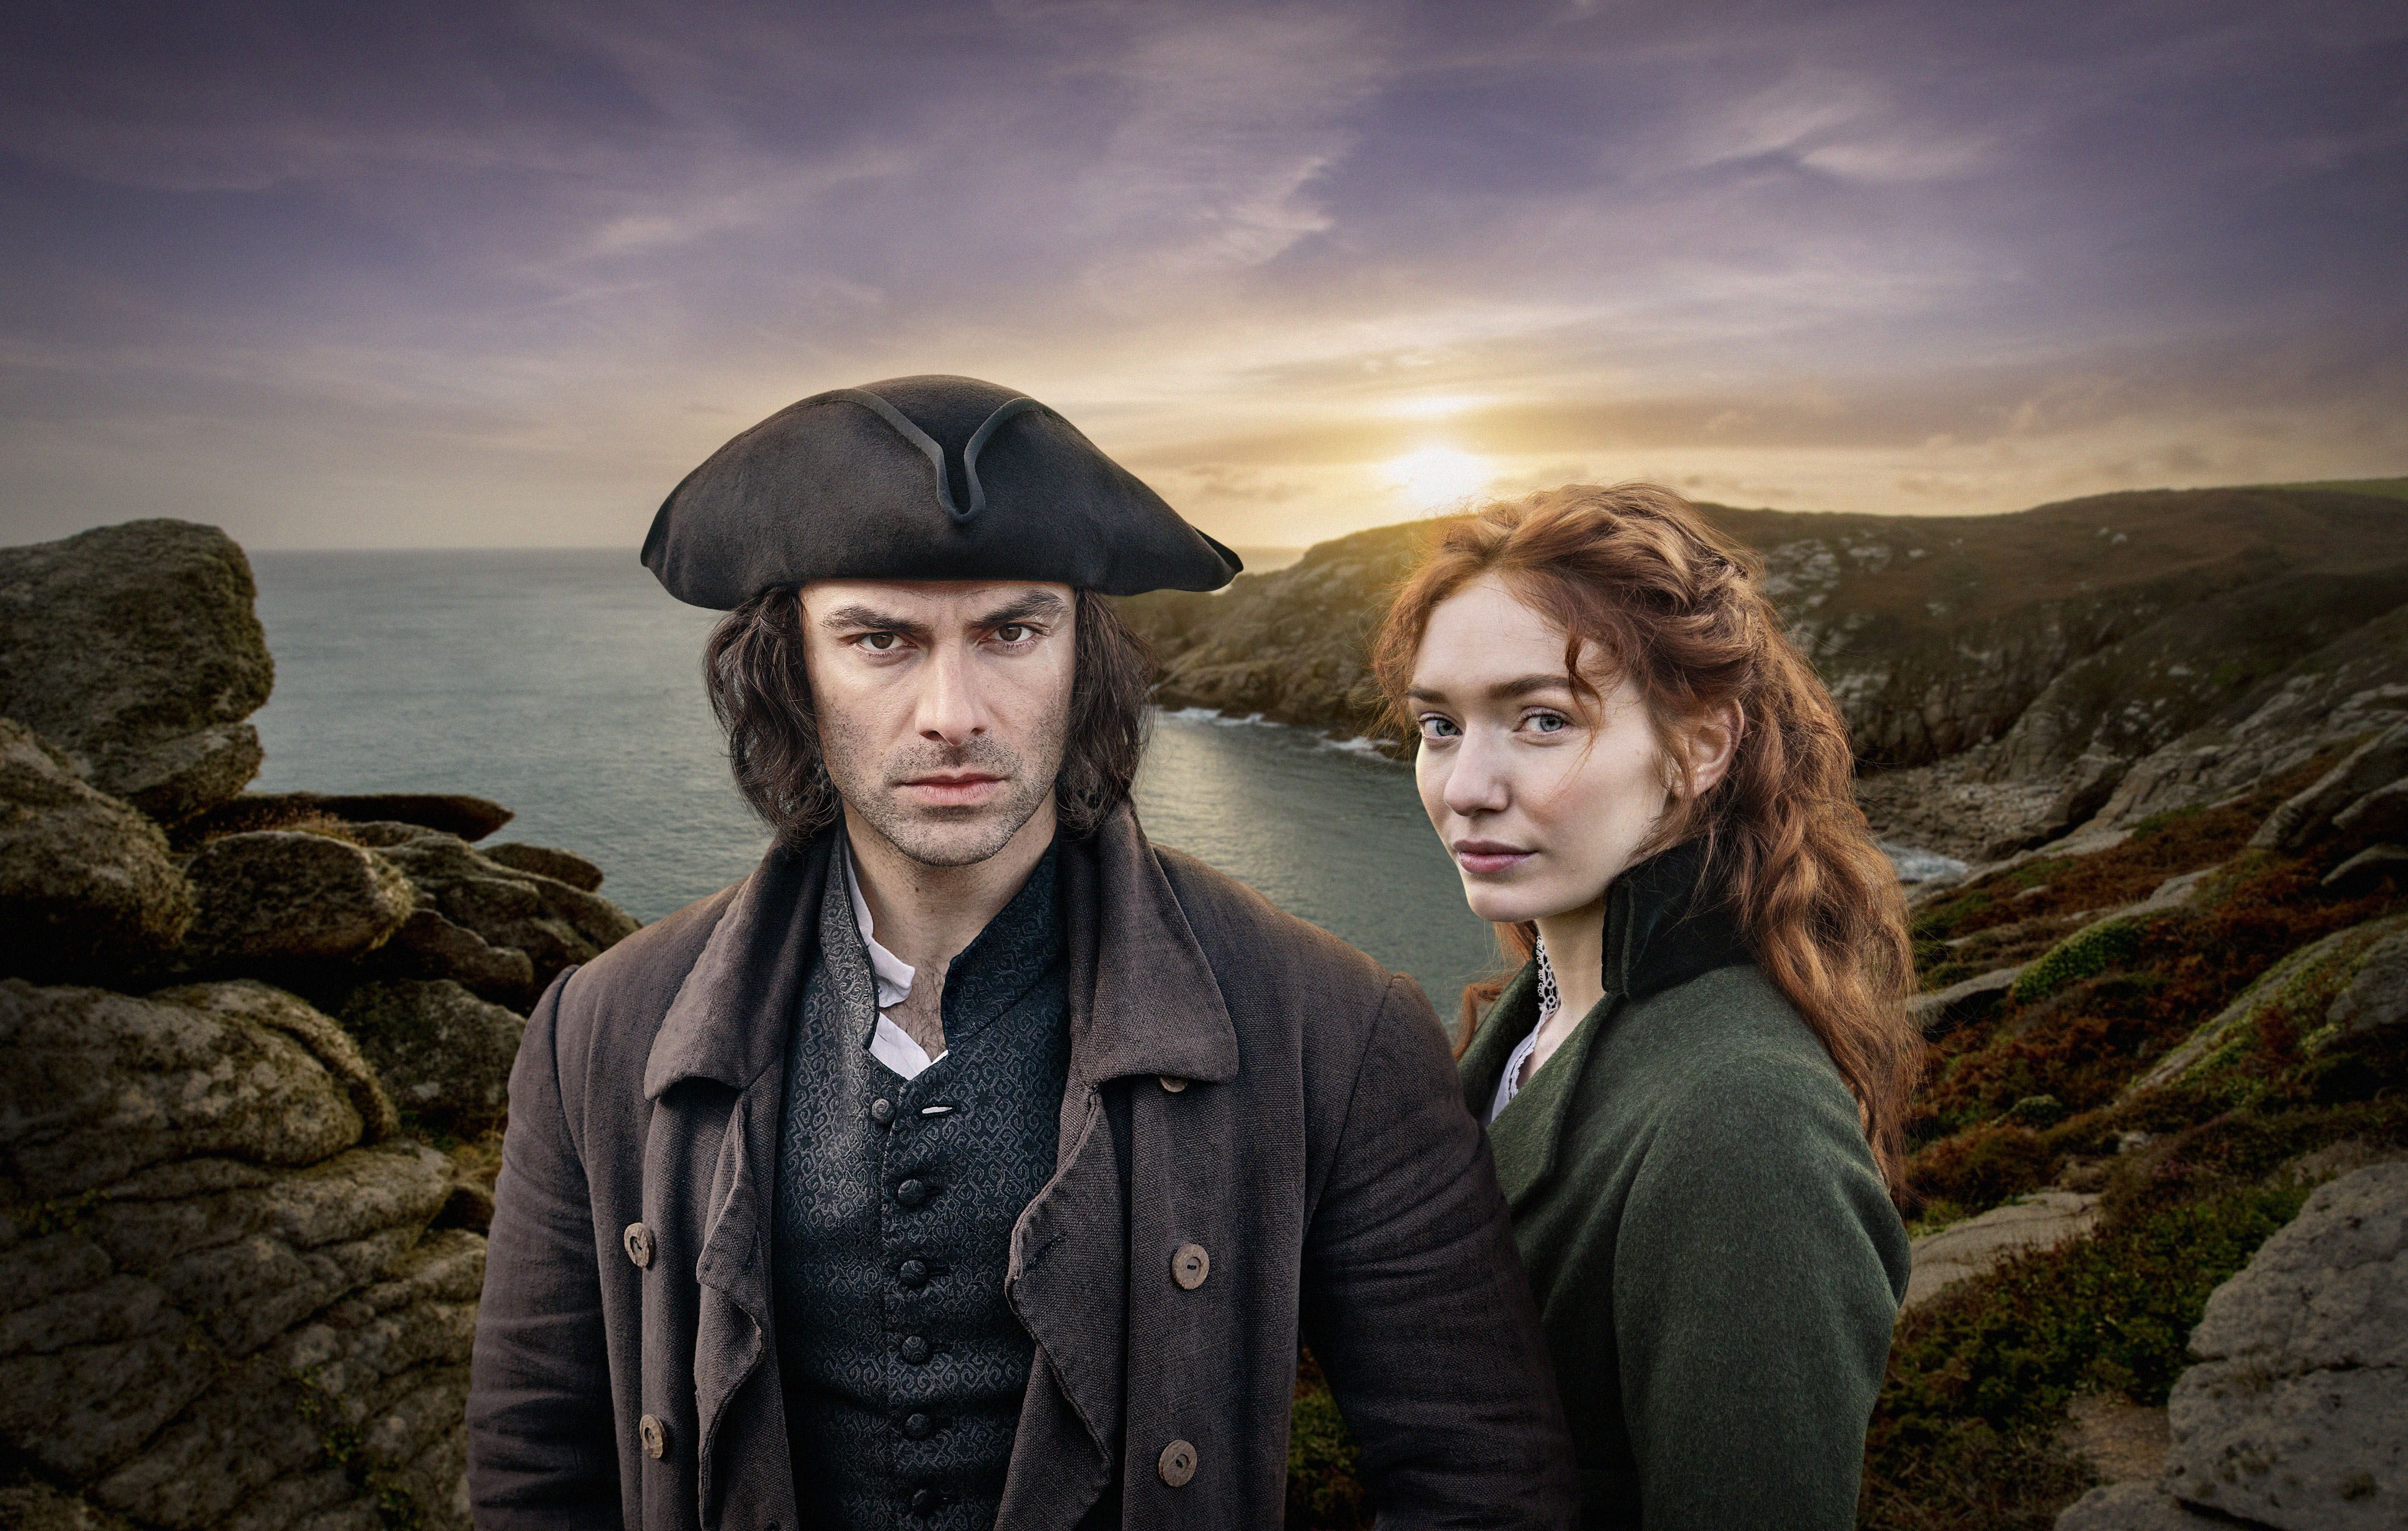 Poldark leaves viewers scratching their heads after out-of-the-blue cliffhanger